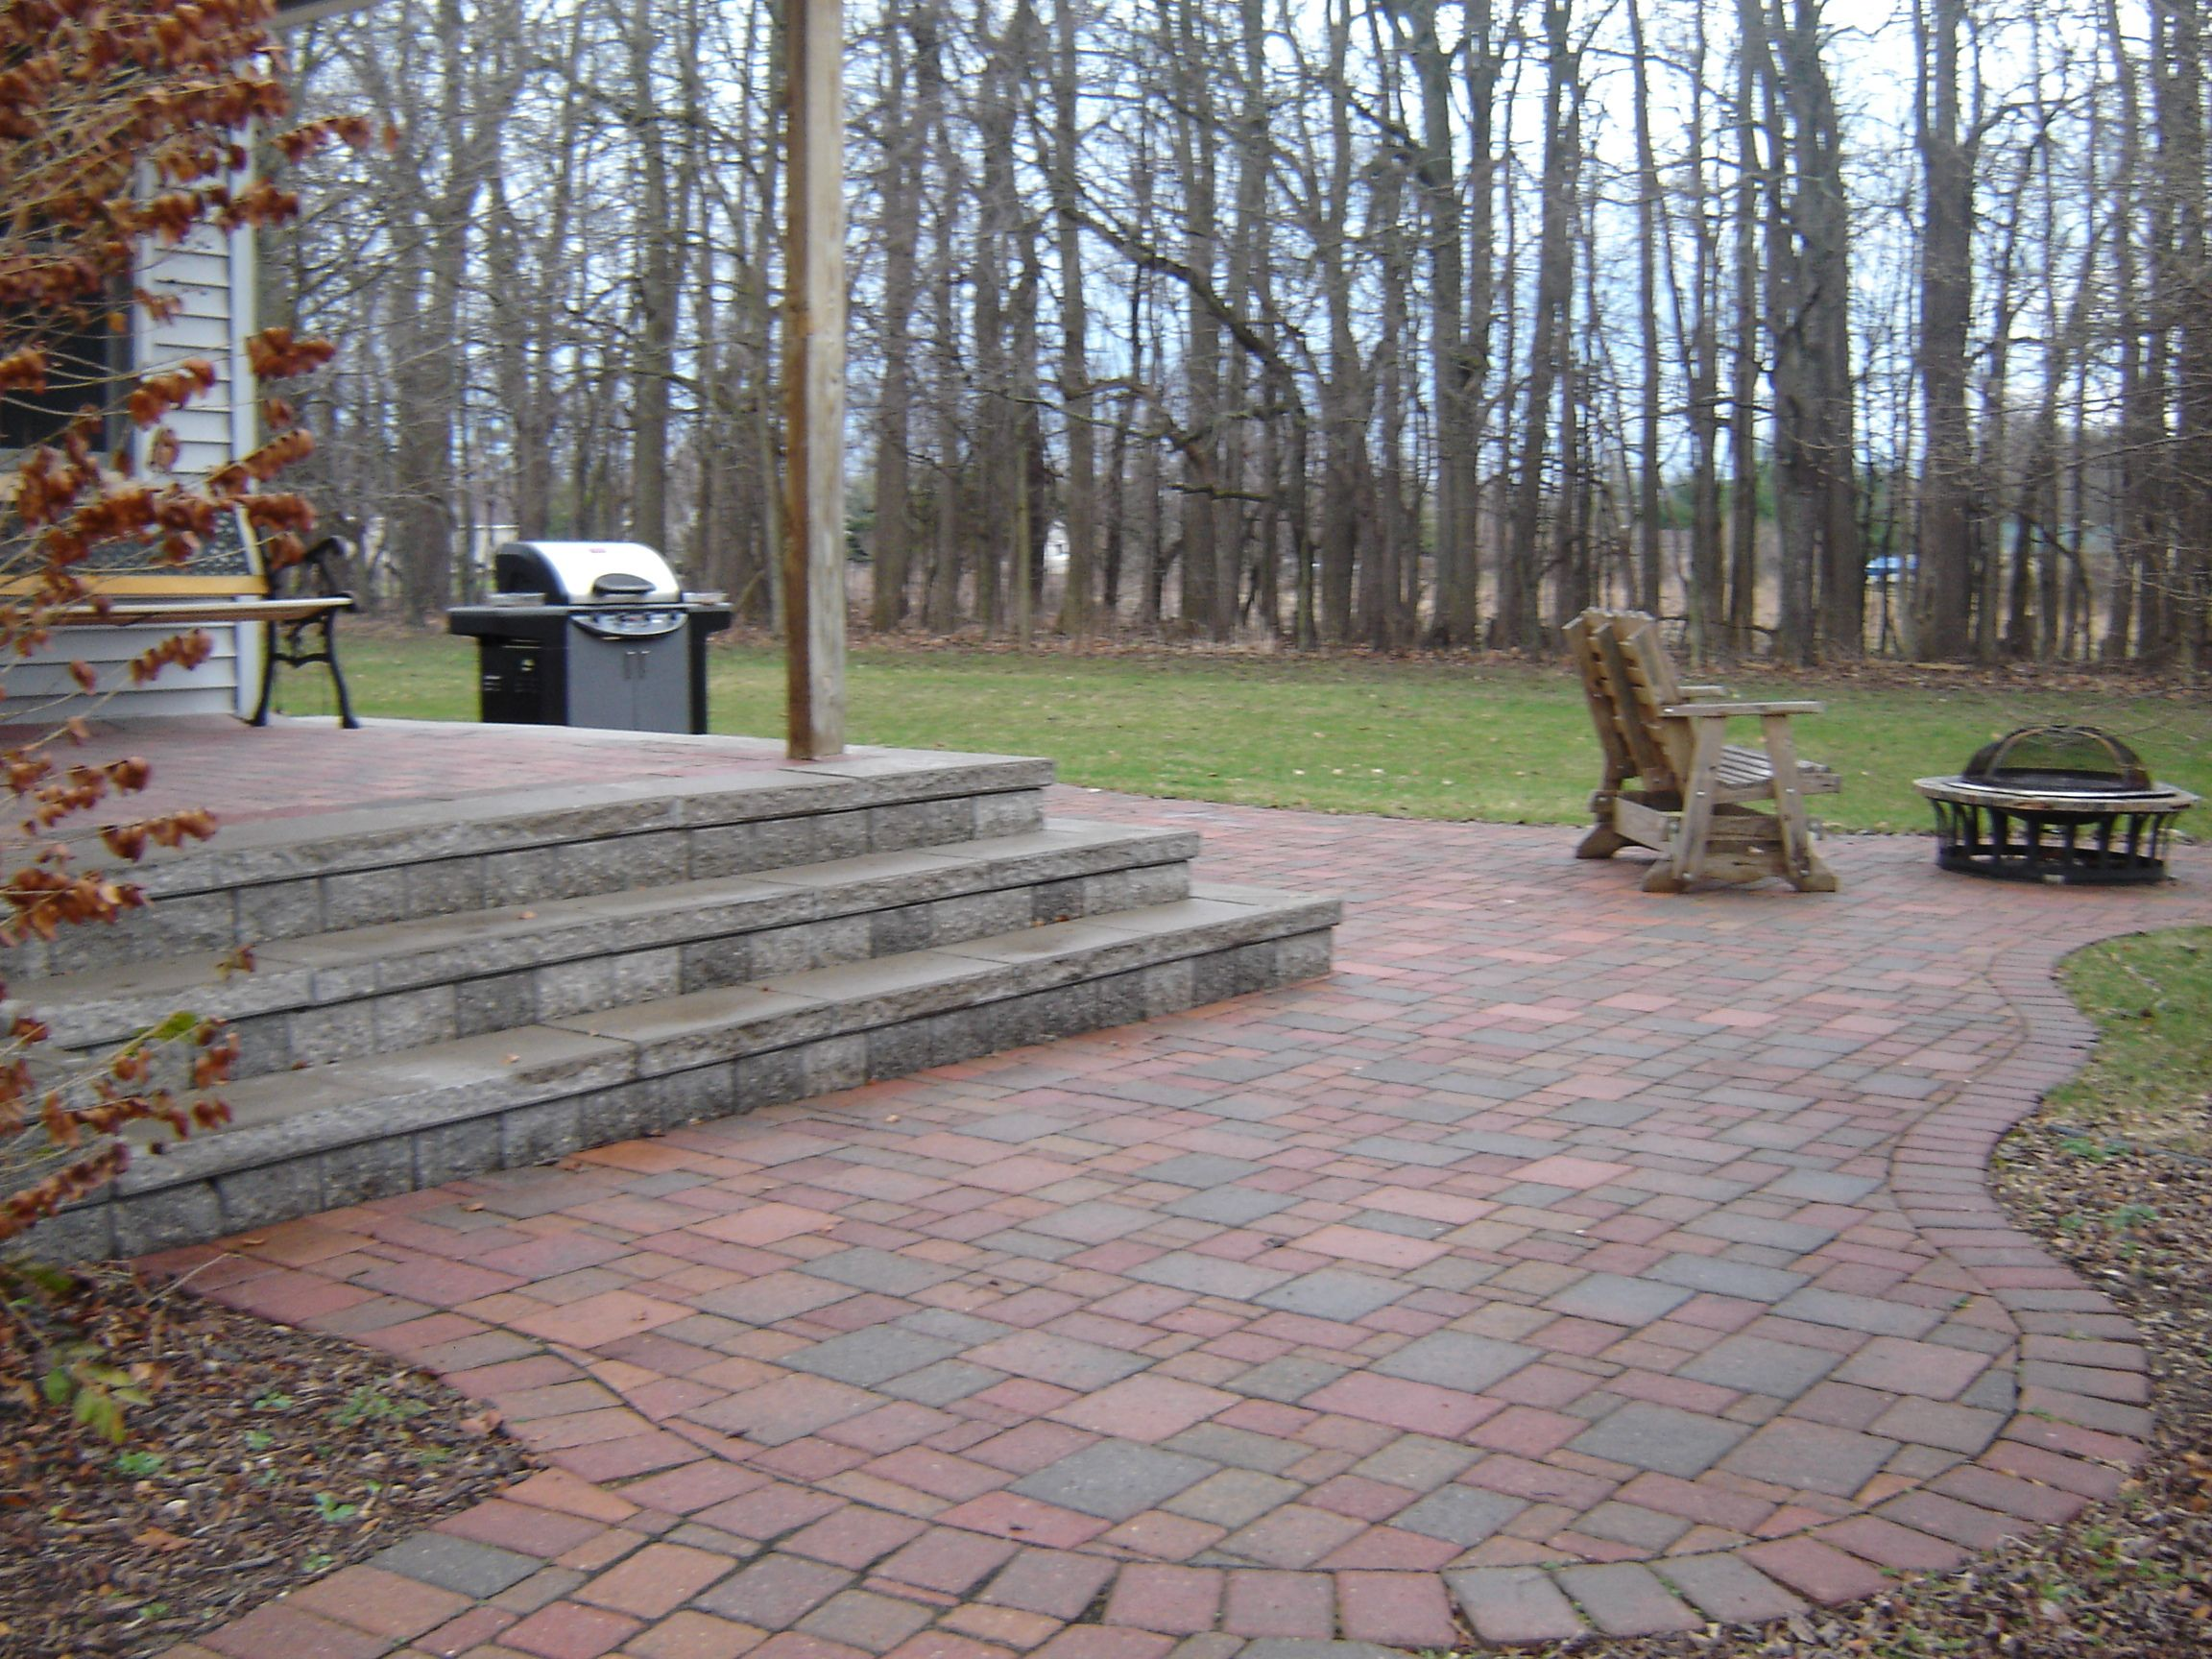 Brick Paver Patio That Steps Up To A Raised Patio.